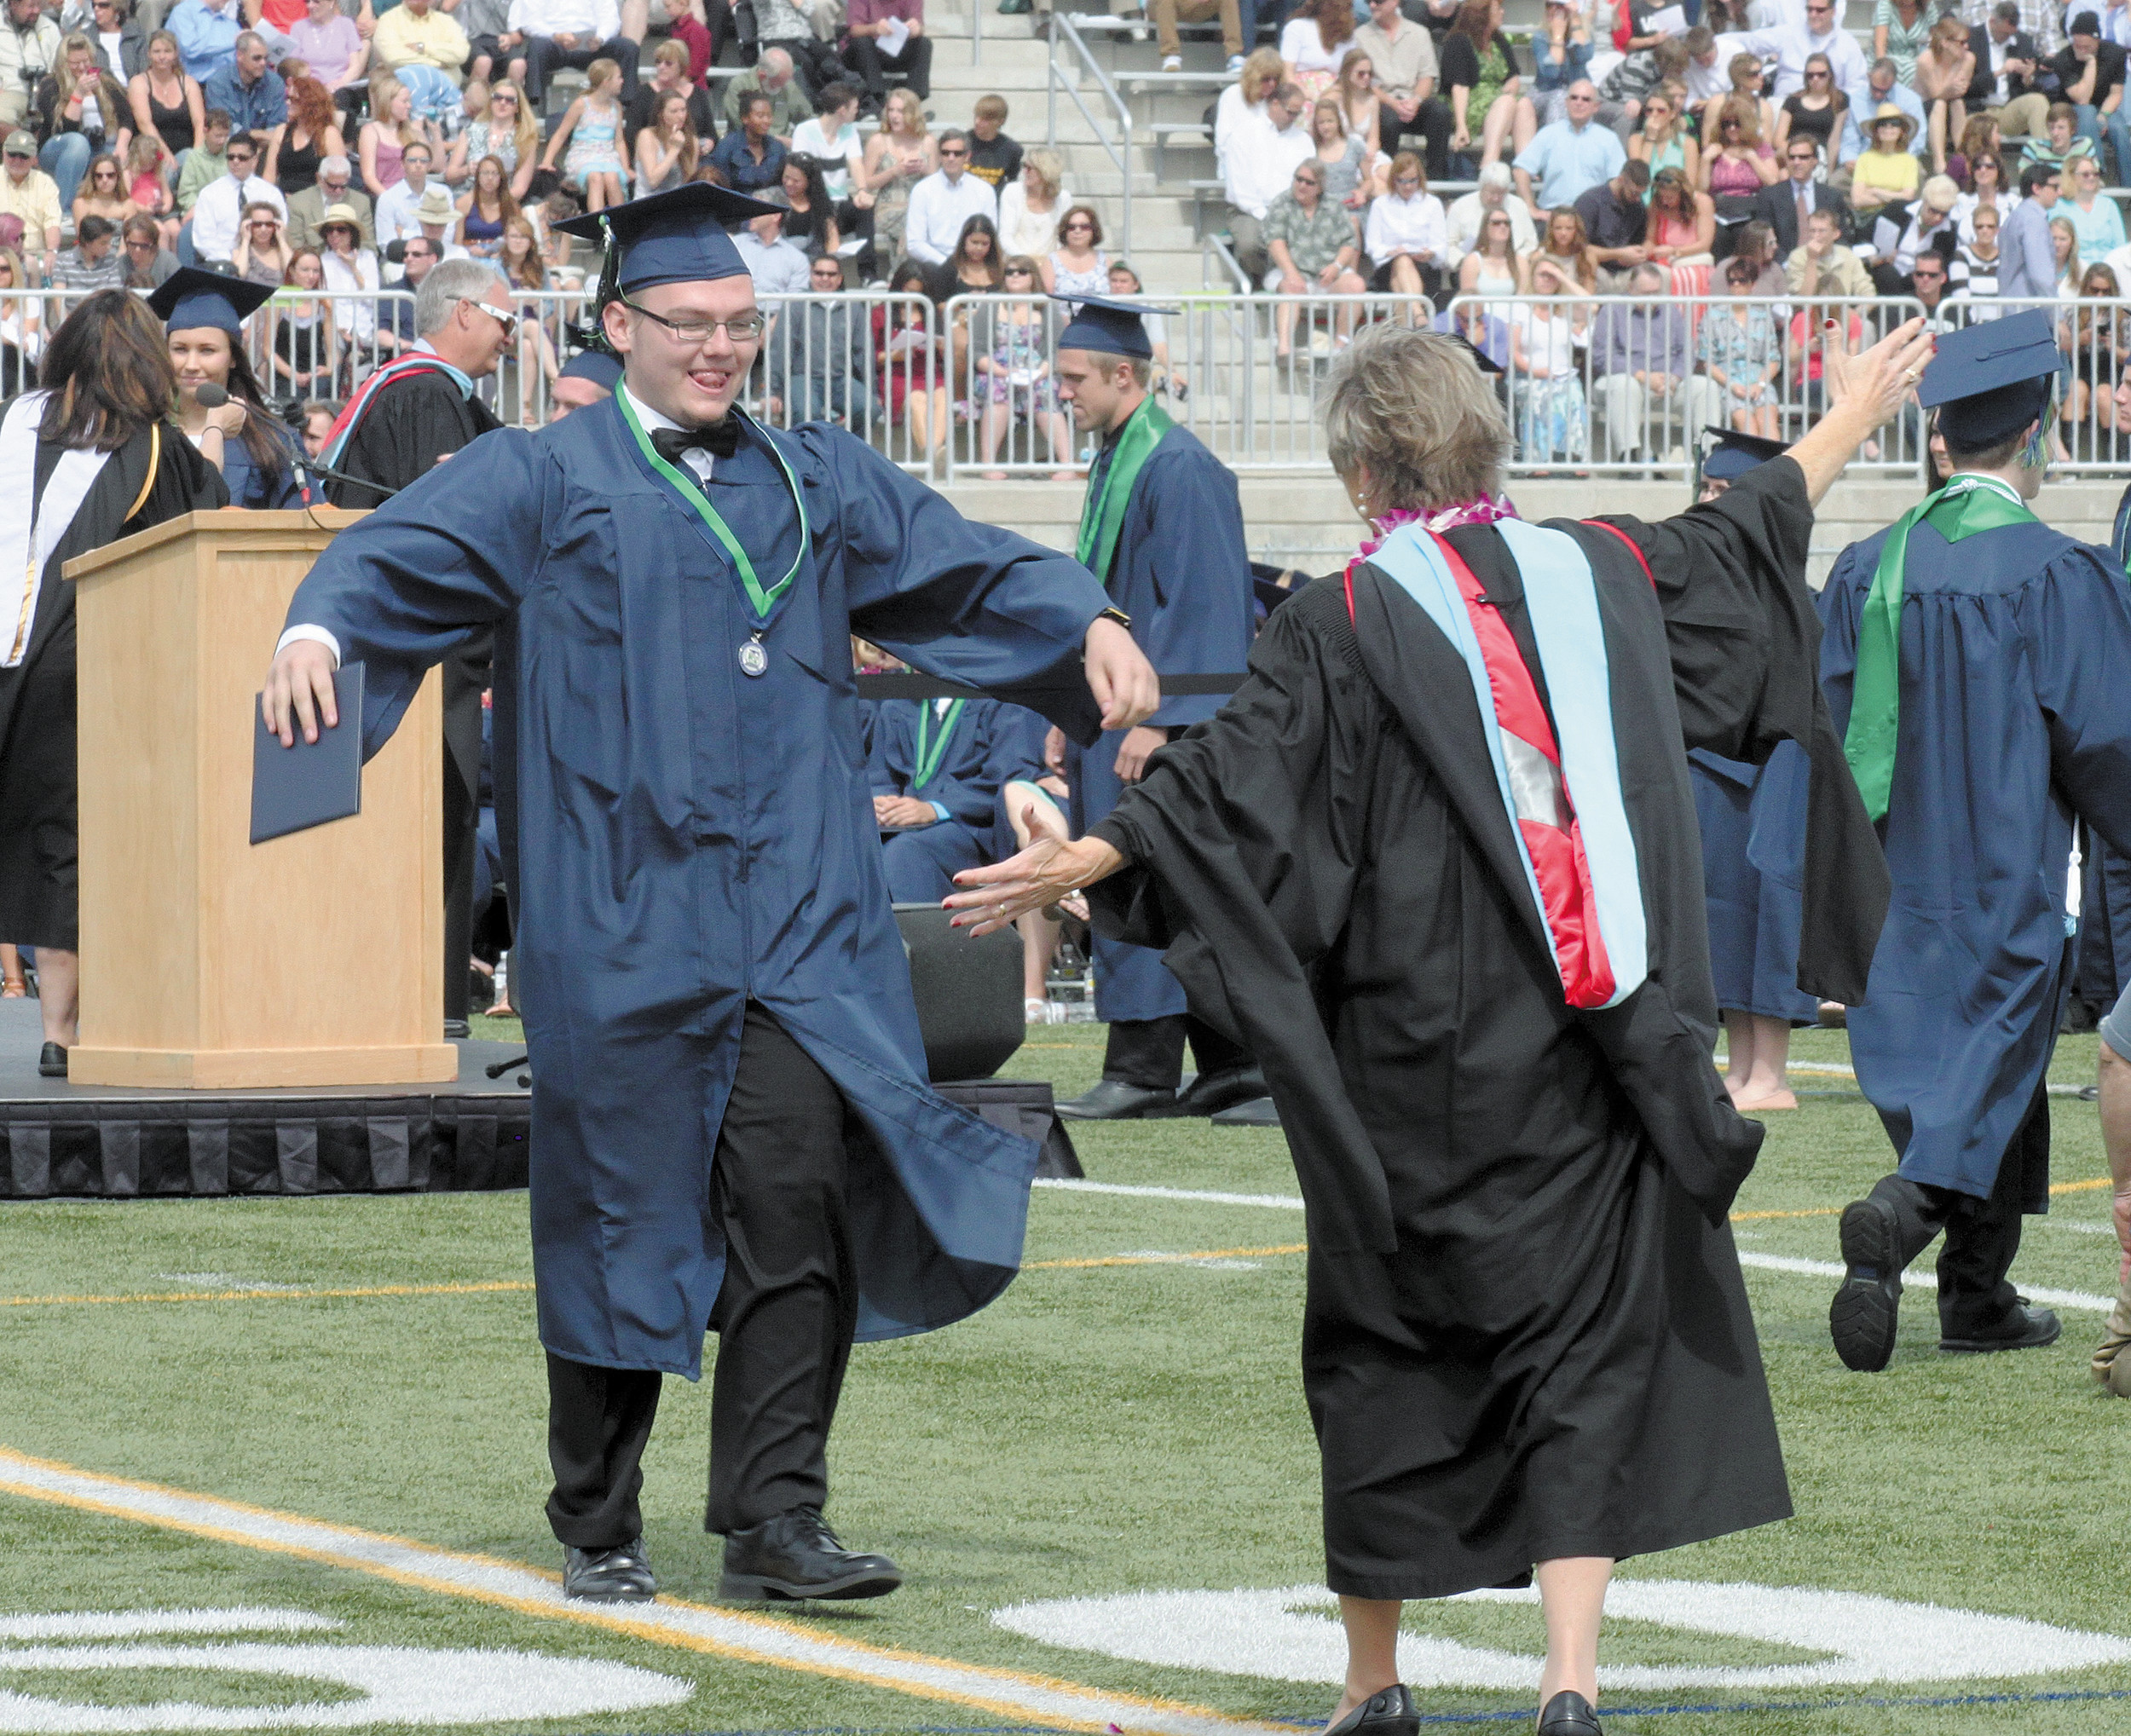 Justin Glidewell gets ready to hug ThunderRidge Principal Carole Jennings after receiving his diploma.